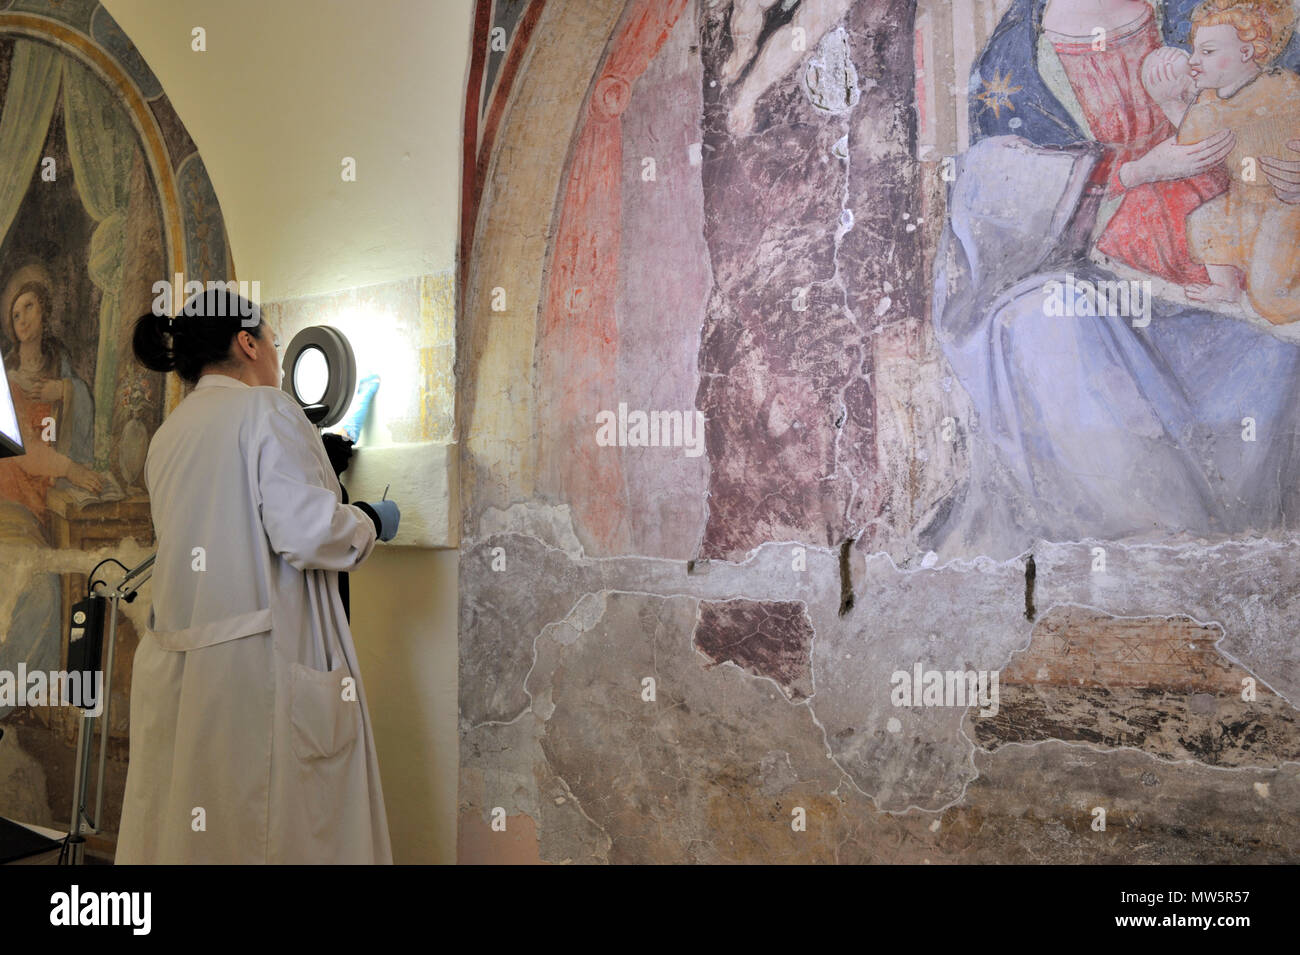 restorations of the frescos (16th century), on the right Madonna del Latte (14th century) in the deconsecrated church of Santa Marta, Rome, Italy Stock Photo